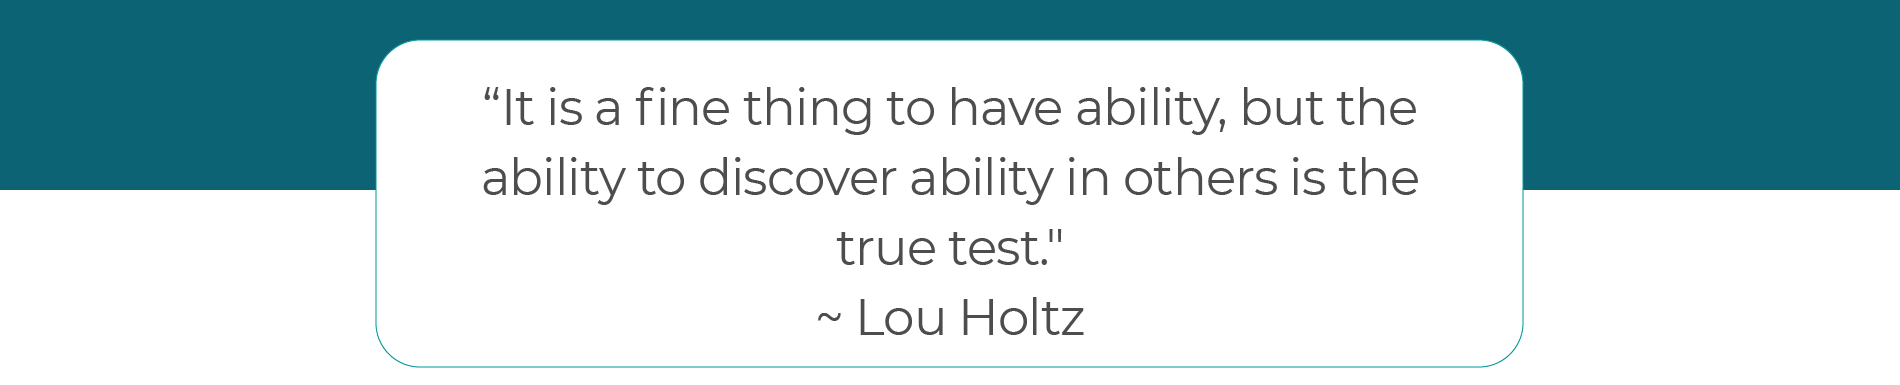 Paul Muench quote Lou Holtz